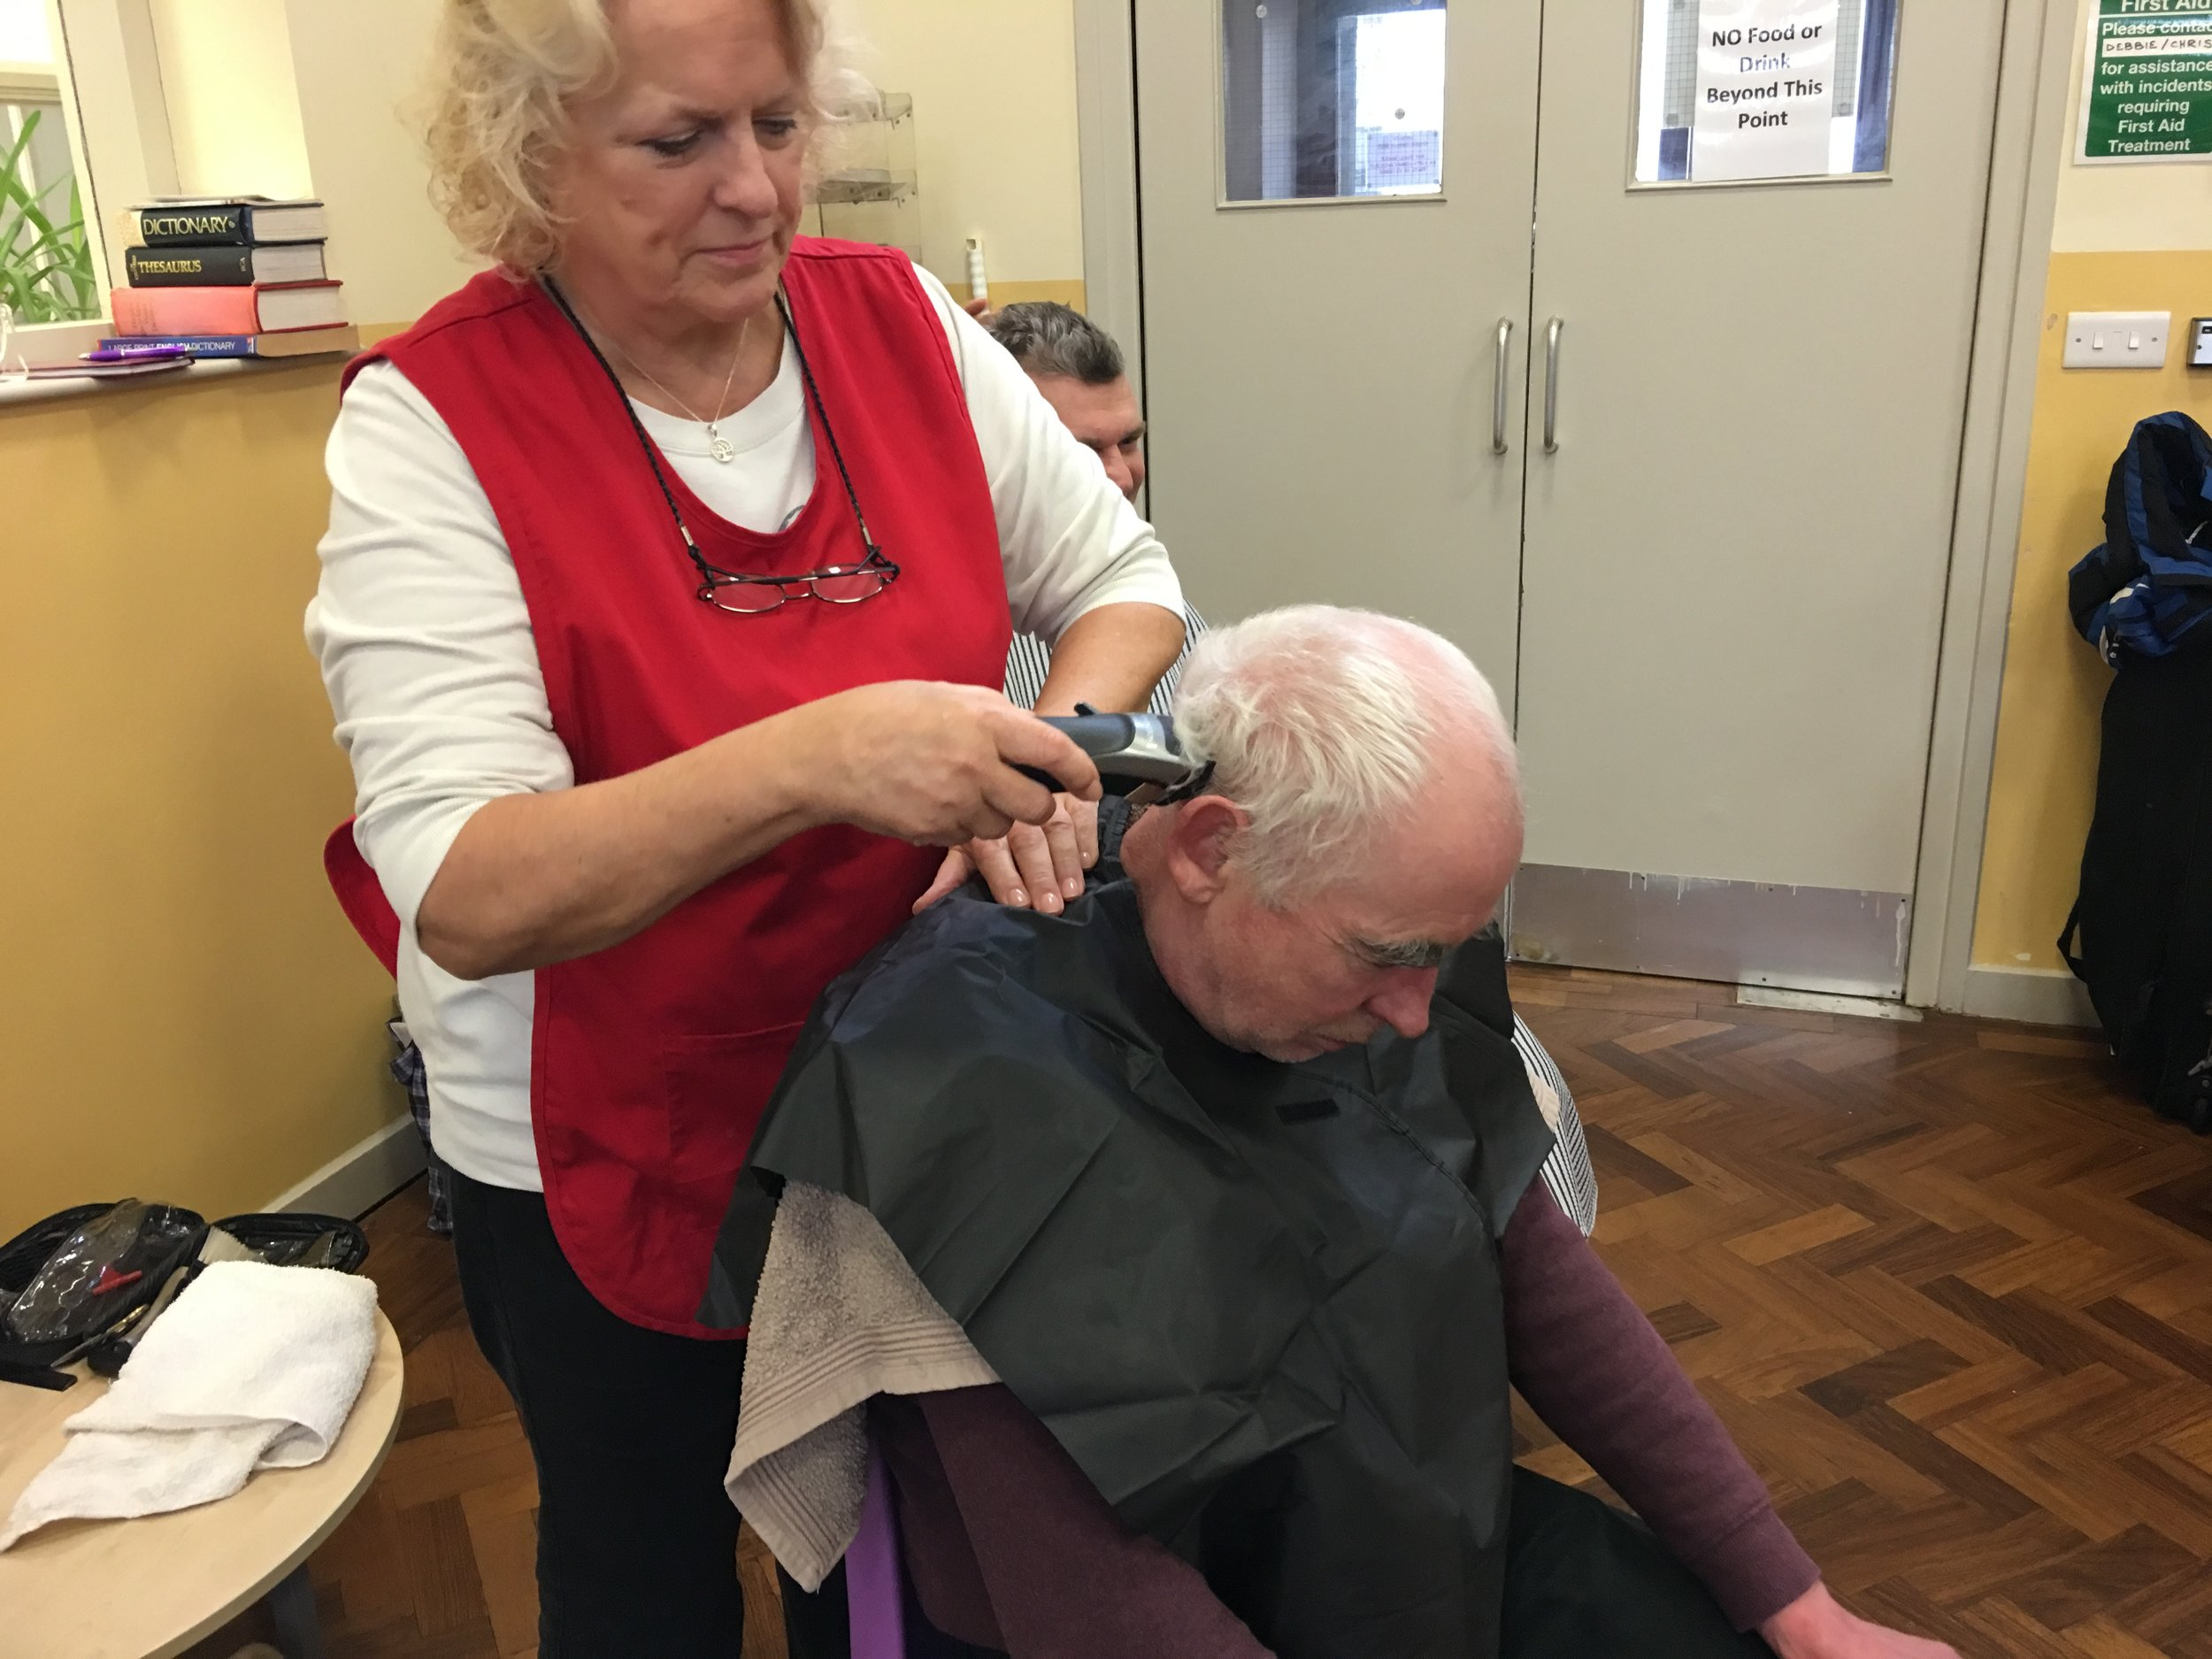 Haircuts are available at the centre on Wednesday's in the centre.